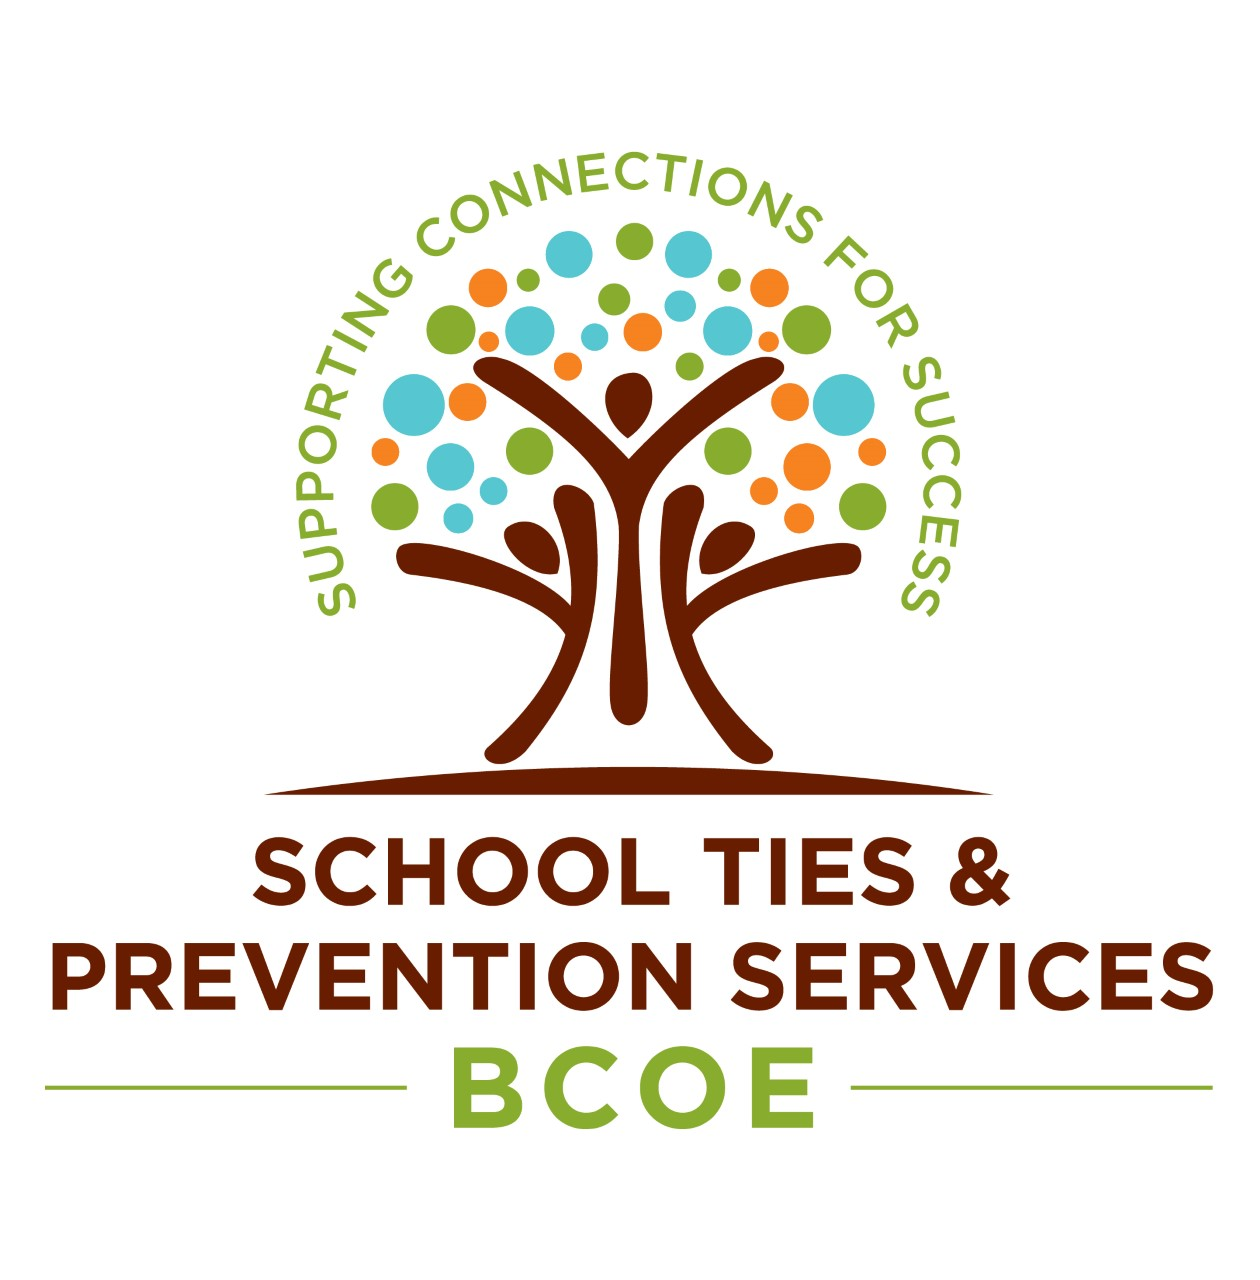 School Ties & Prevention Services BCOE Logo